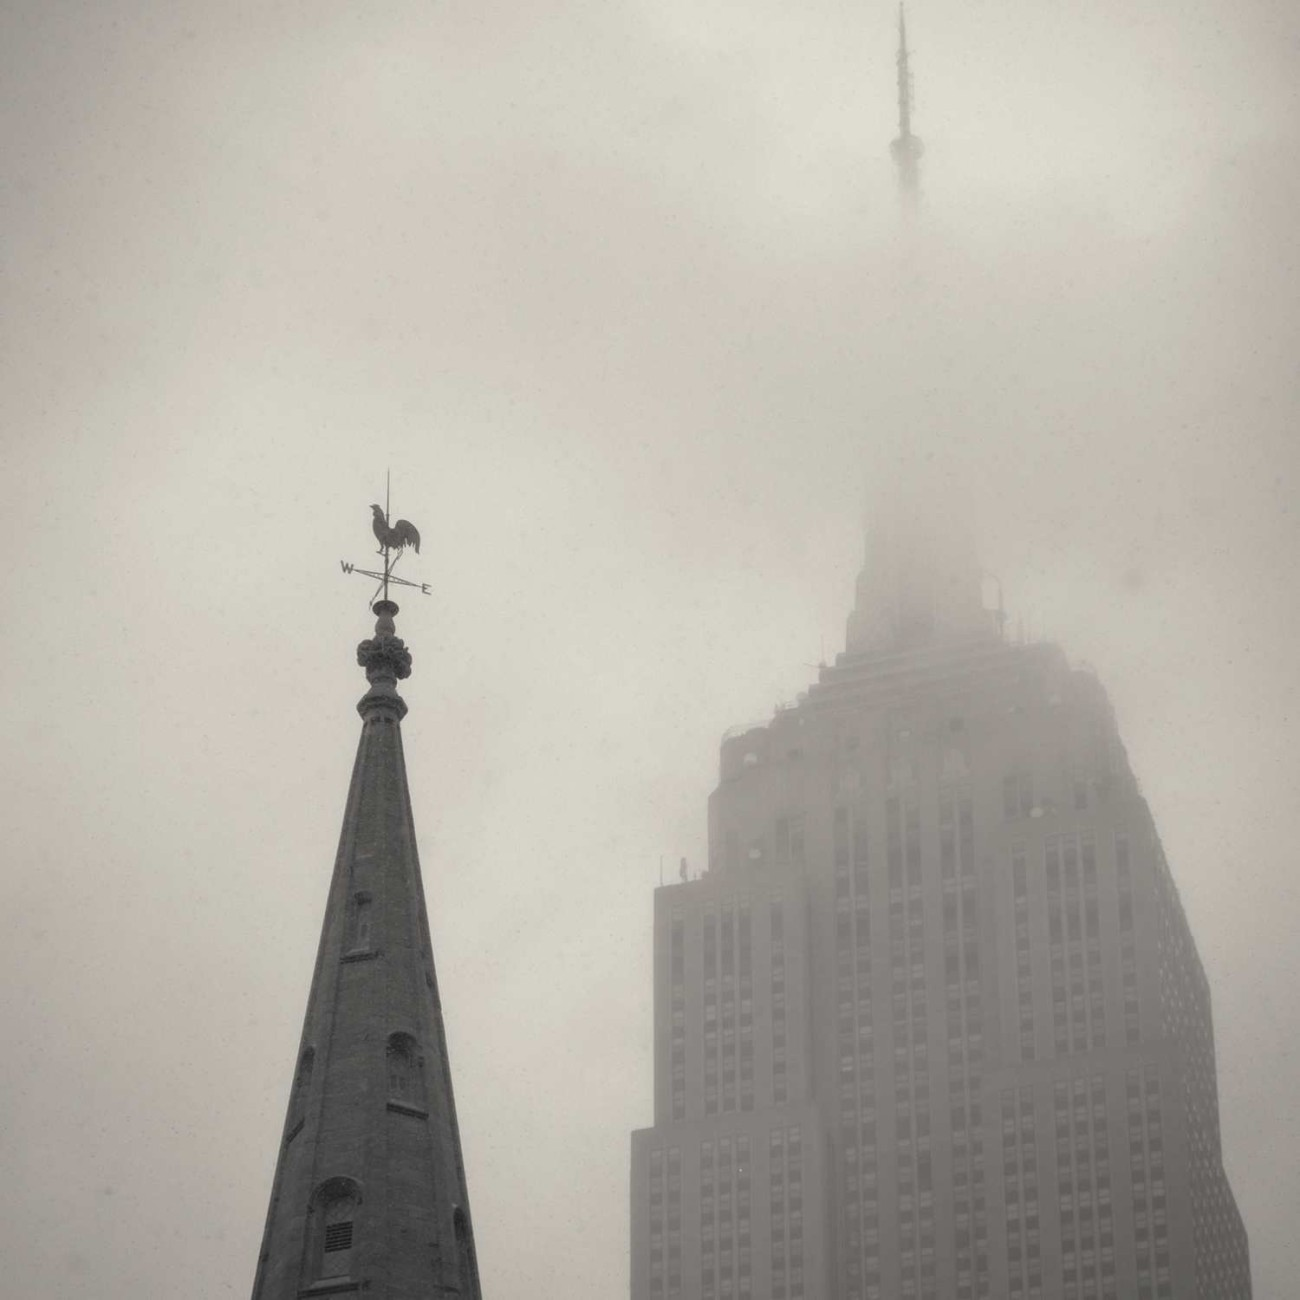 Empire State Building and steeple in fog, NY, 2014